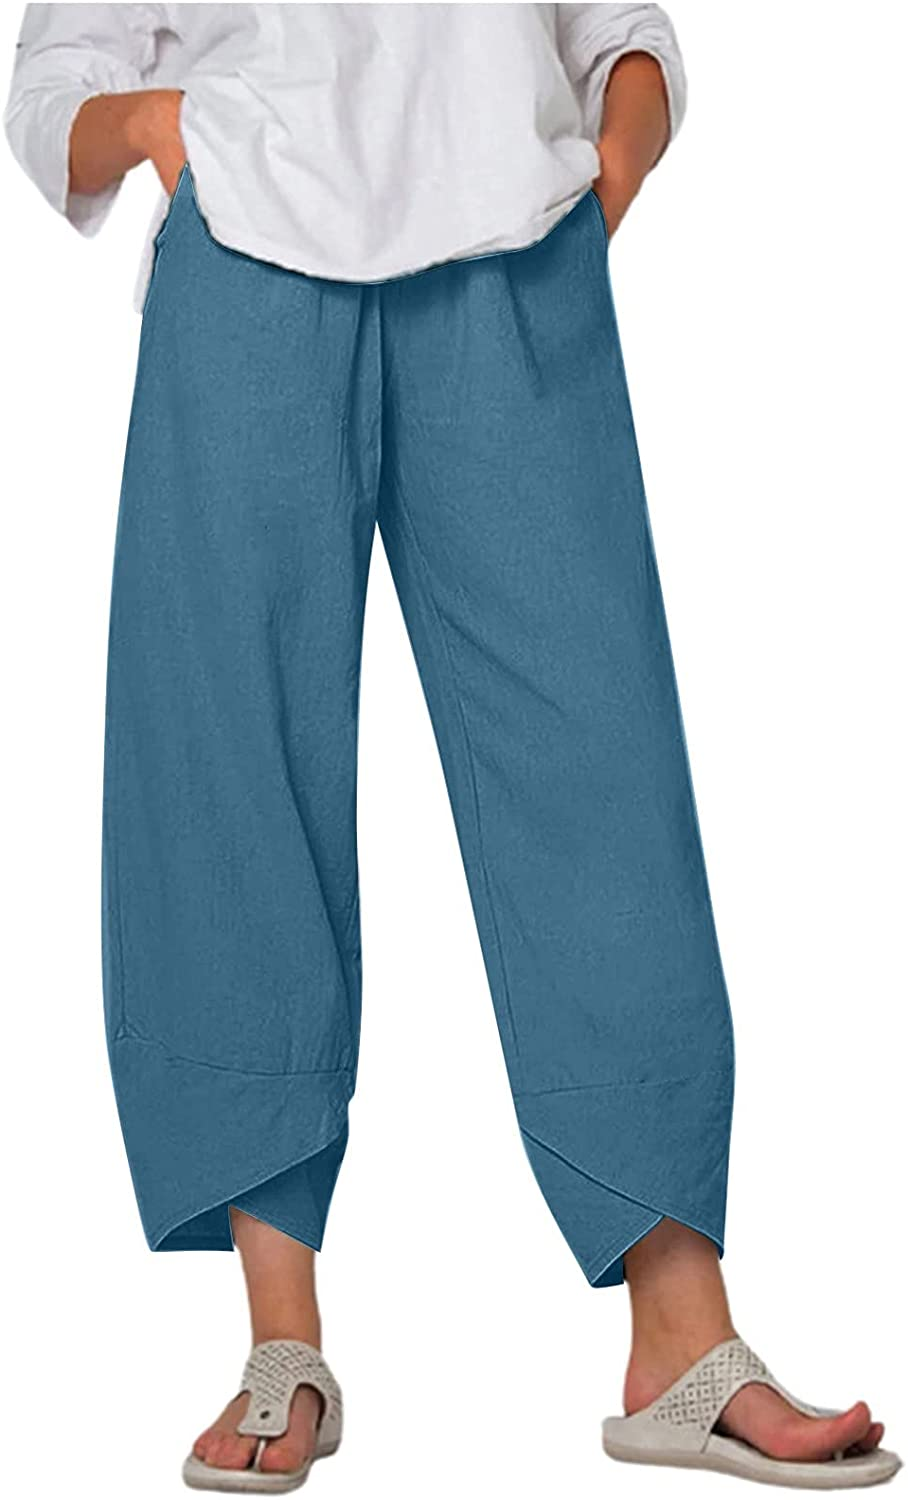 USYFAKGH Sweatpants Pants for Women, Summer Beach Casual Pants, Print Jogger Cropped Trouser